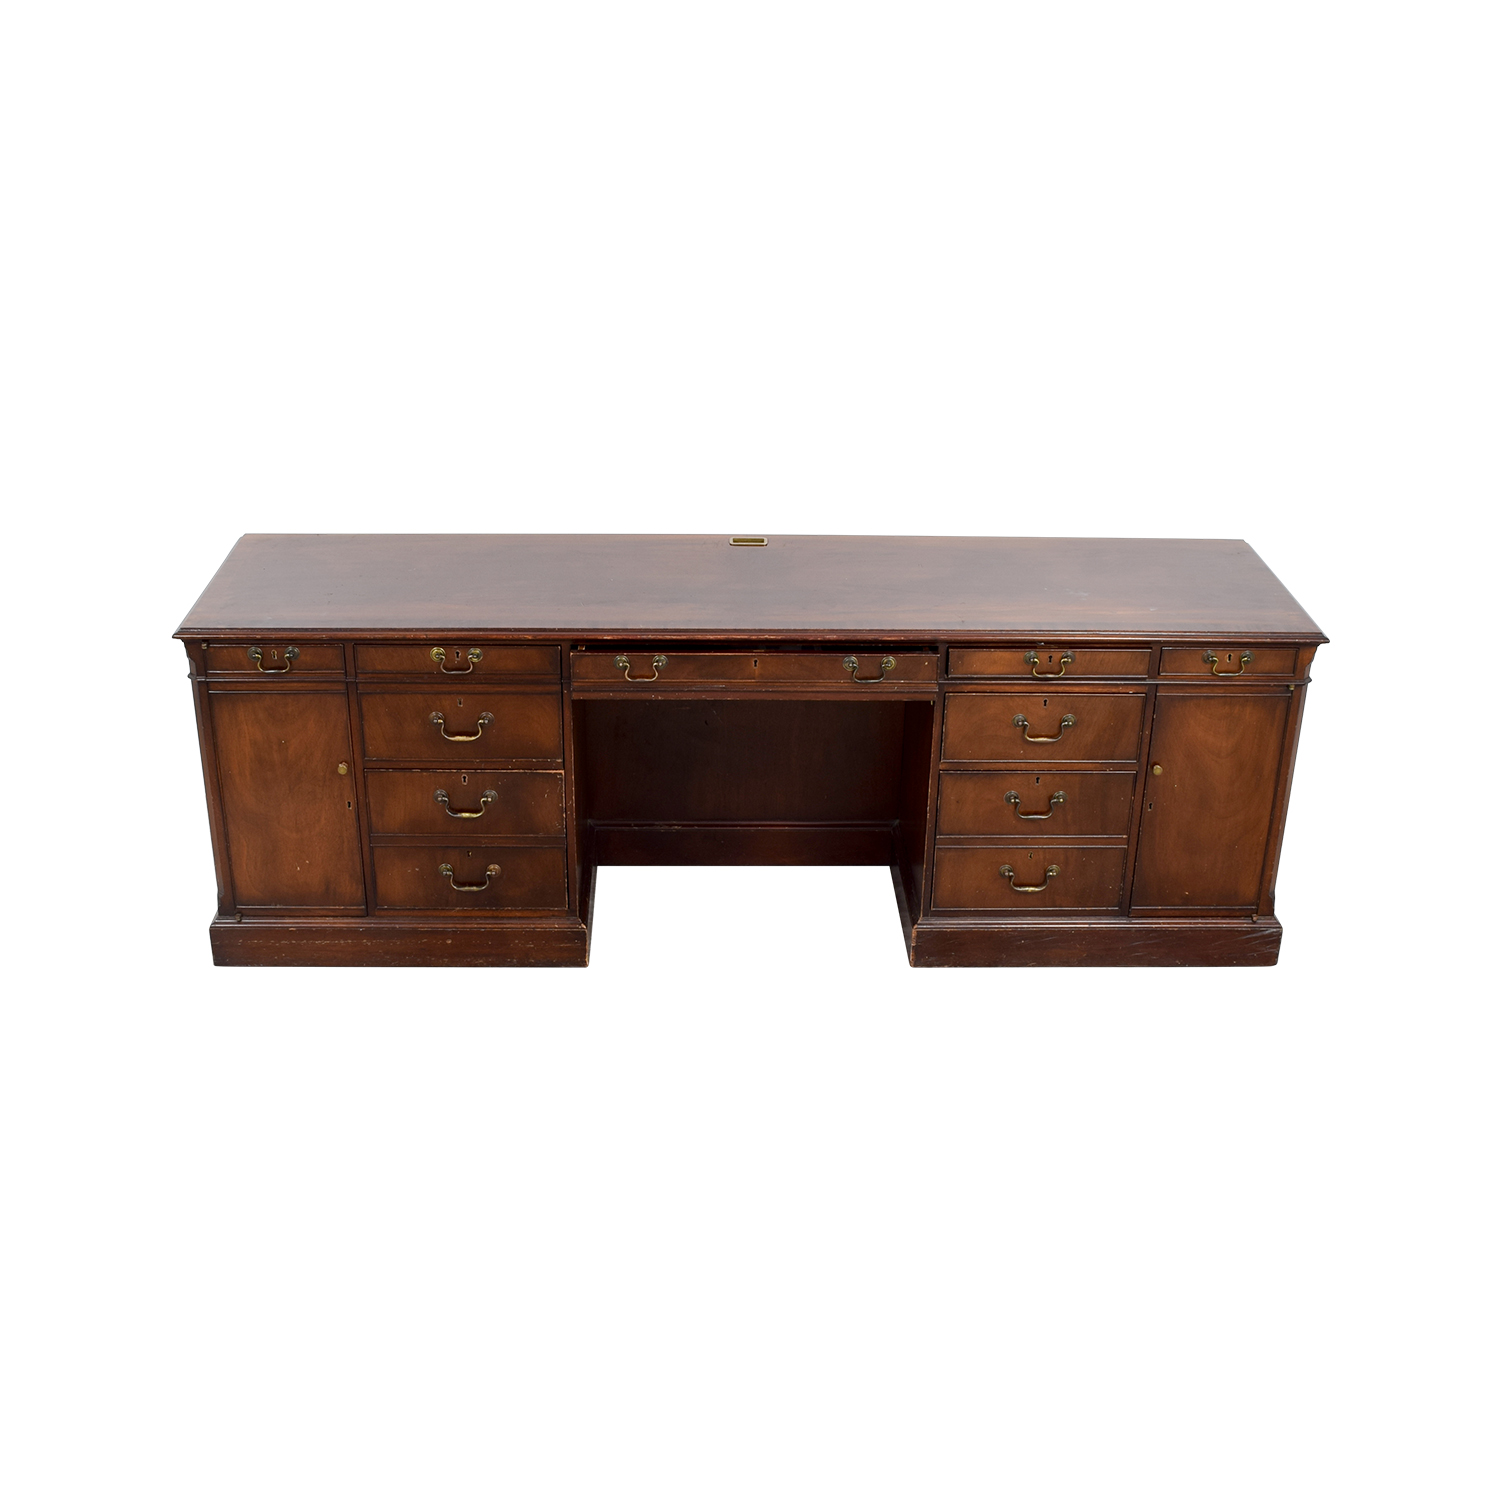 Smith & Watson Smith & Watson Wood Credenza Desk on sale